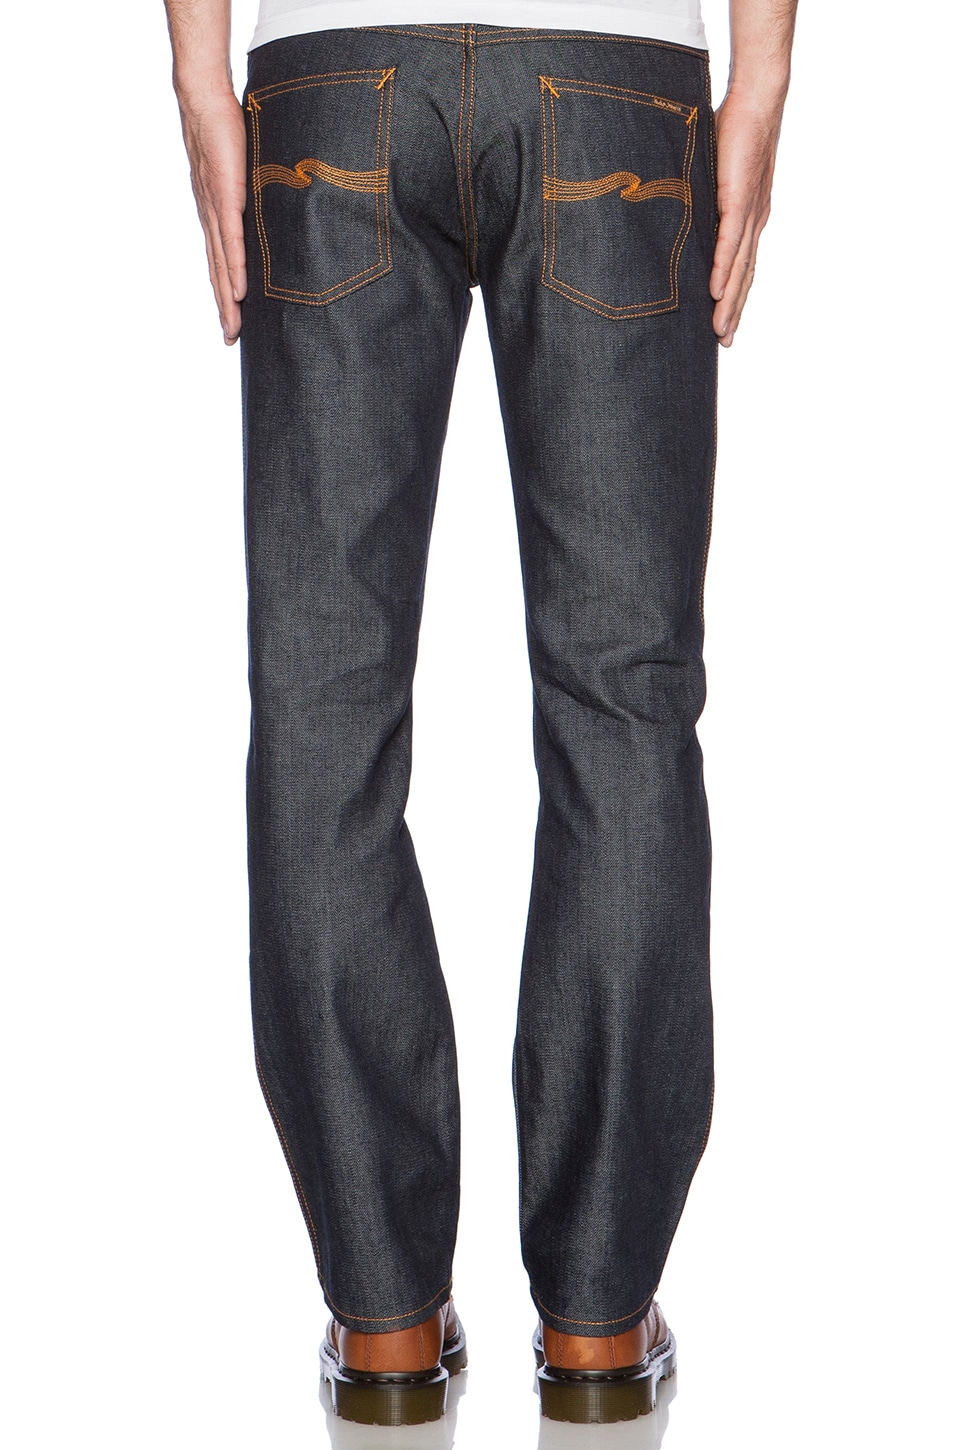 Nudie Jeans Slim Jim in Organic Dry Broken Twill